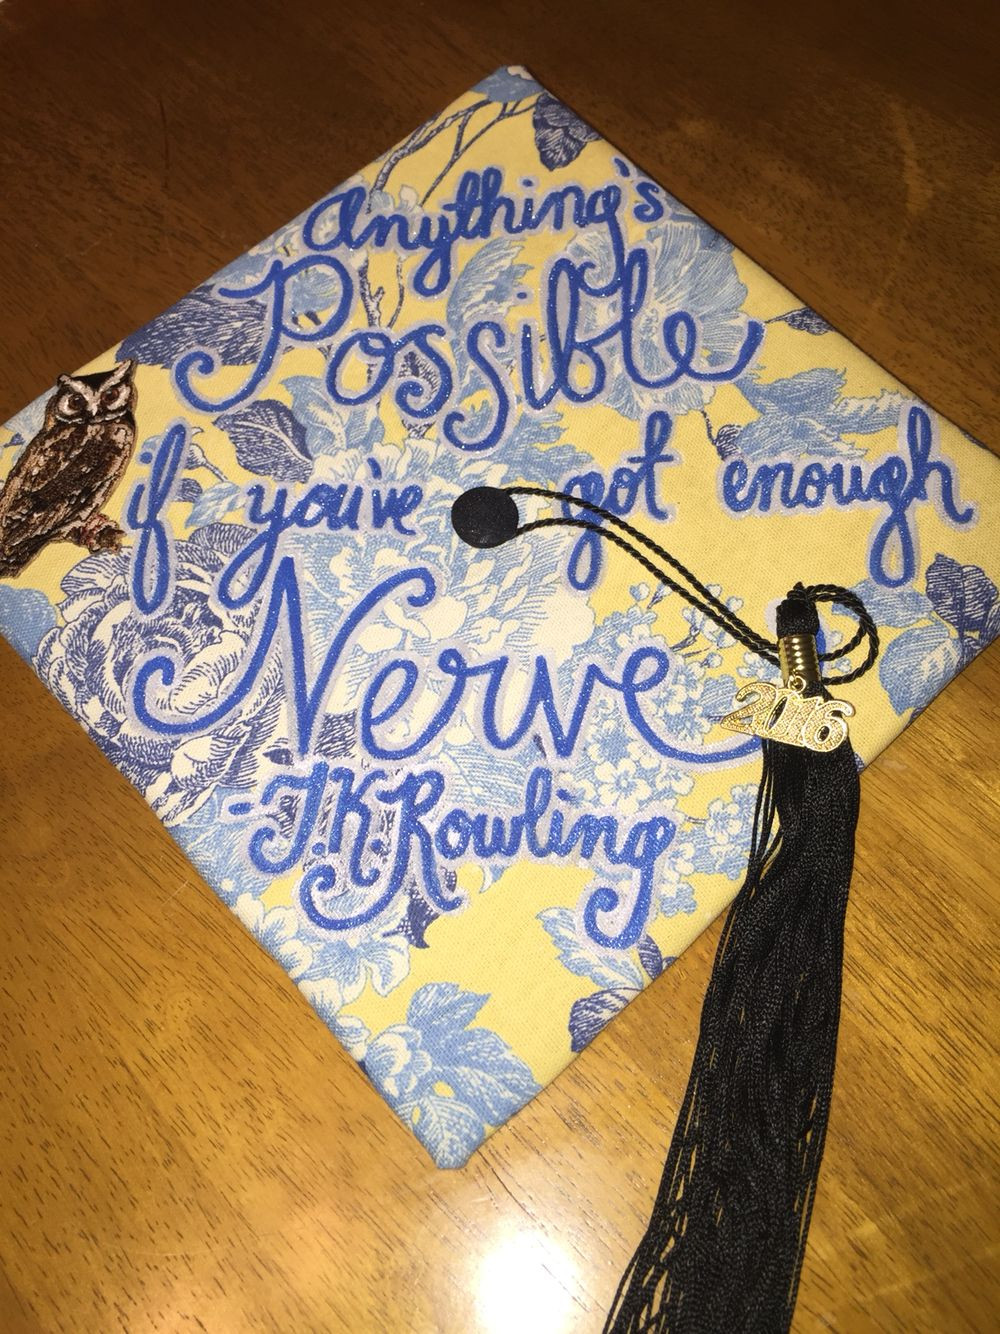 Harry Potter Quotes For Graduation  Harry Potter graduation cap Love quotes from J K